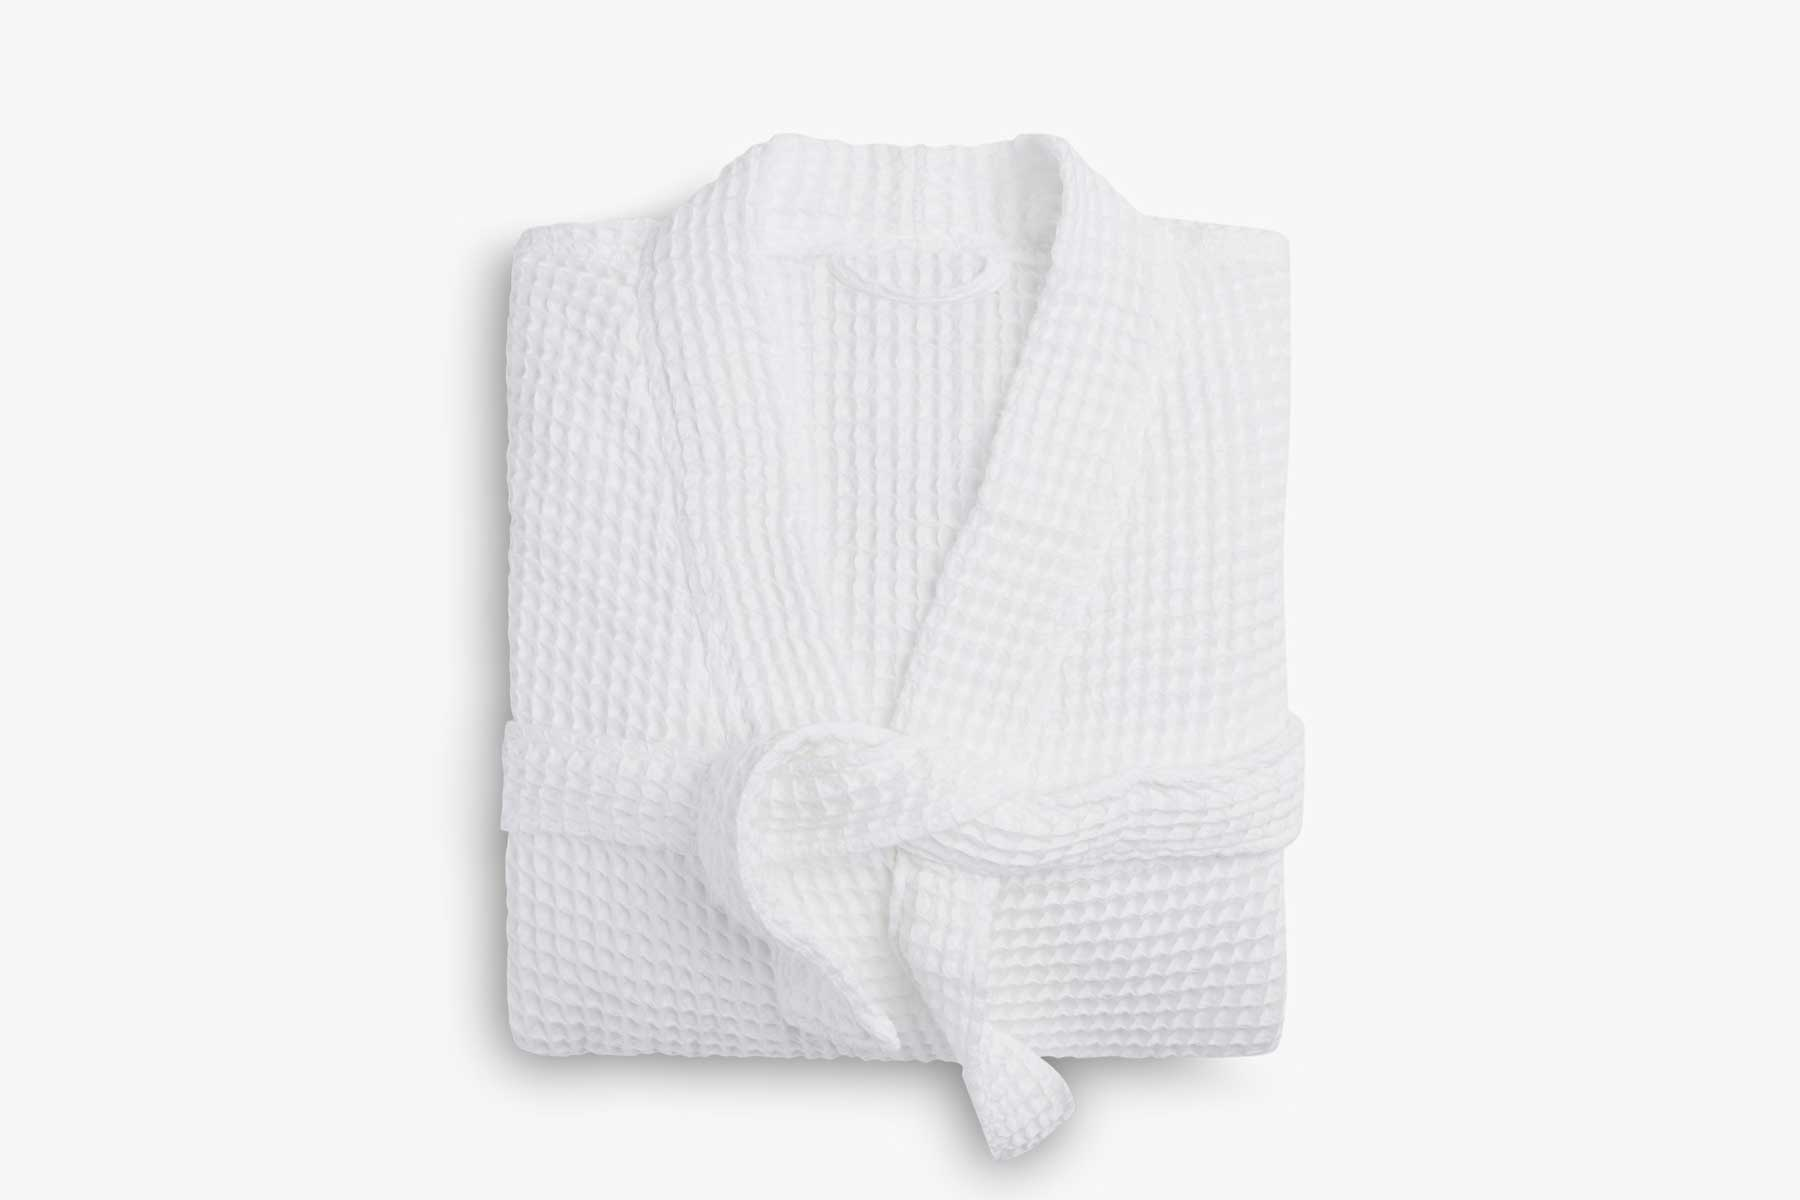 Product image of Parachute's Waffle Robe in White